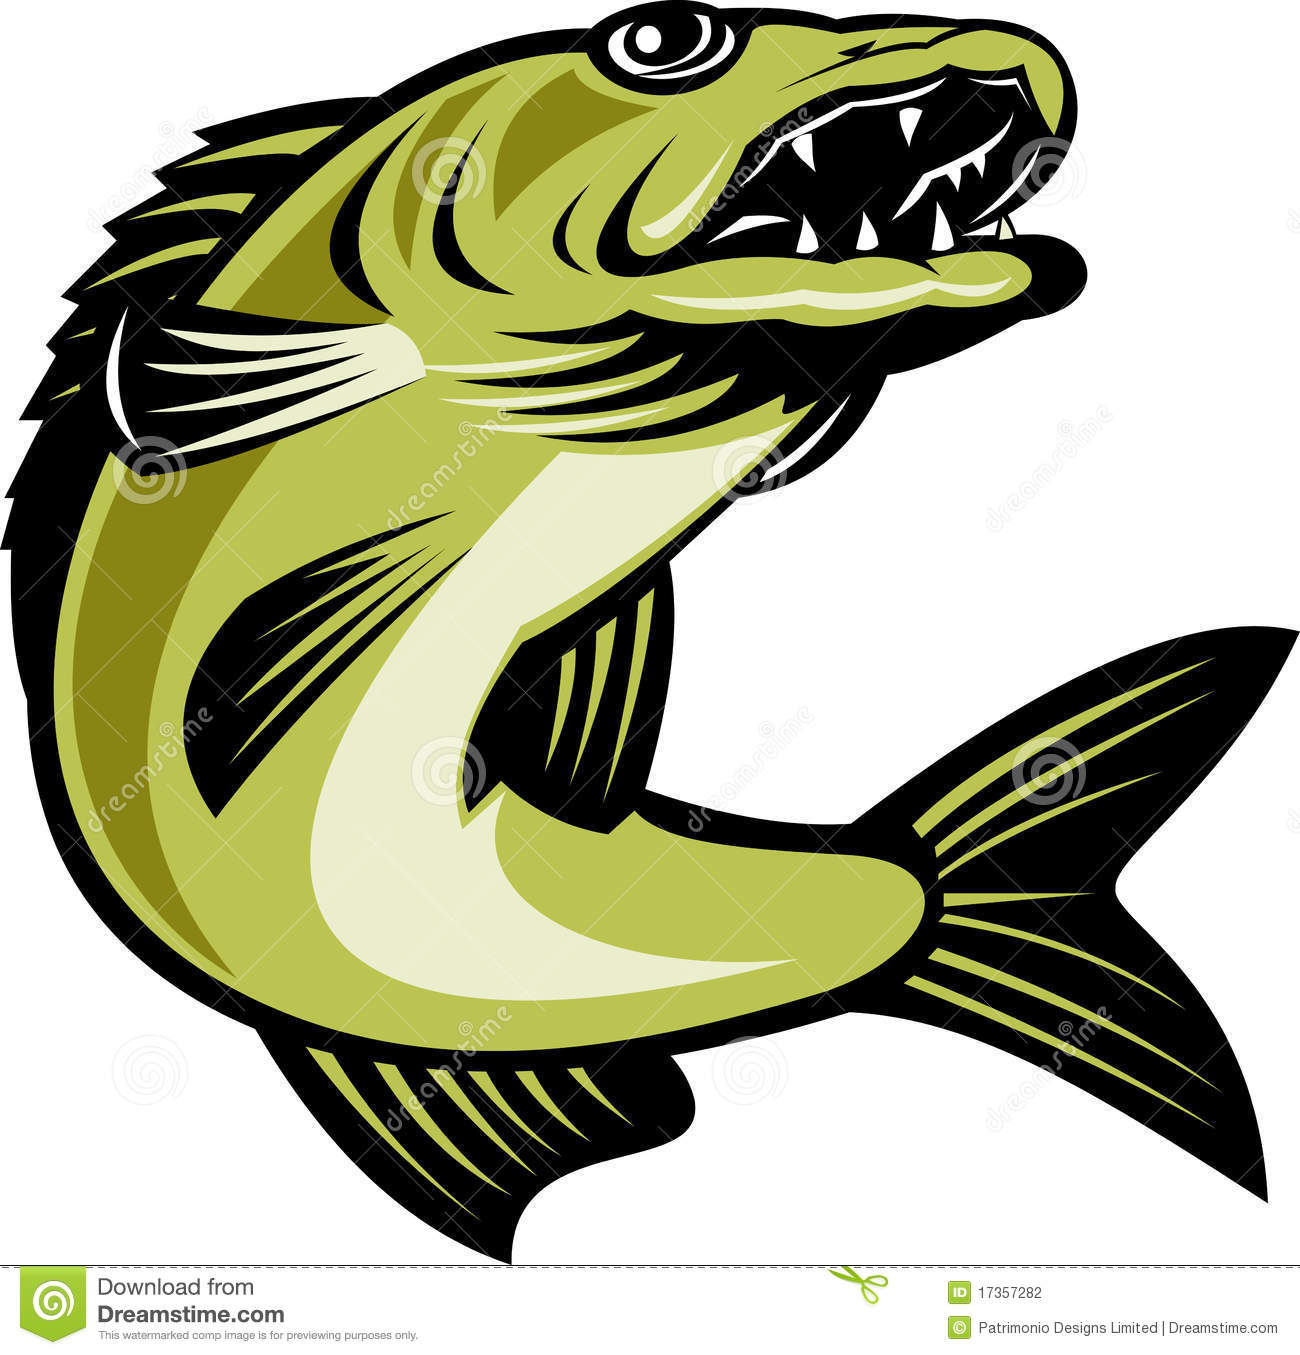 walleye stock illustrations 301 walleye stock illustrations rh dreamstime com walleye clipart free walleye clipart free